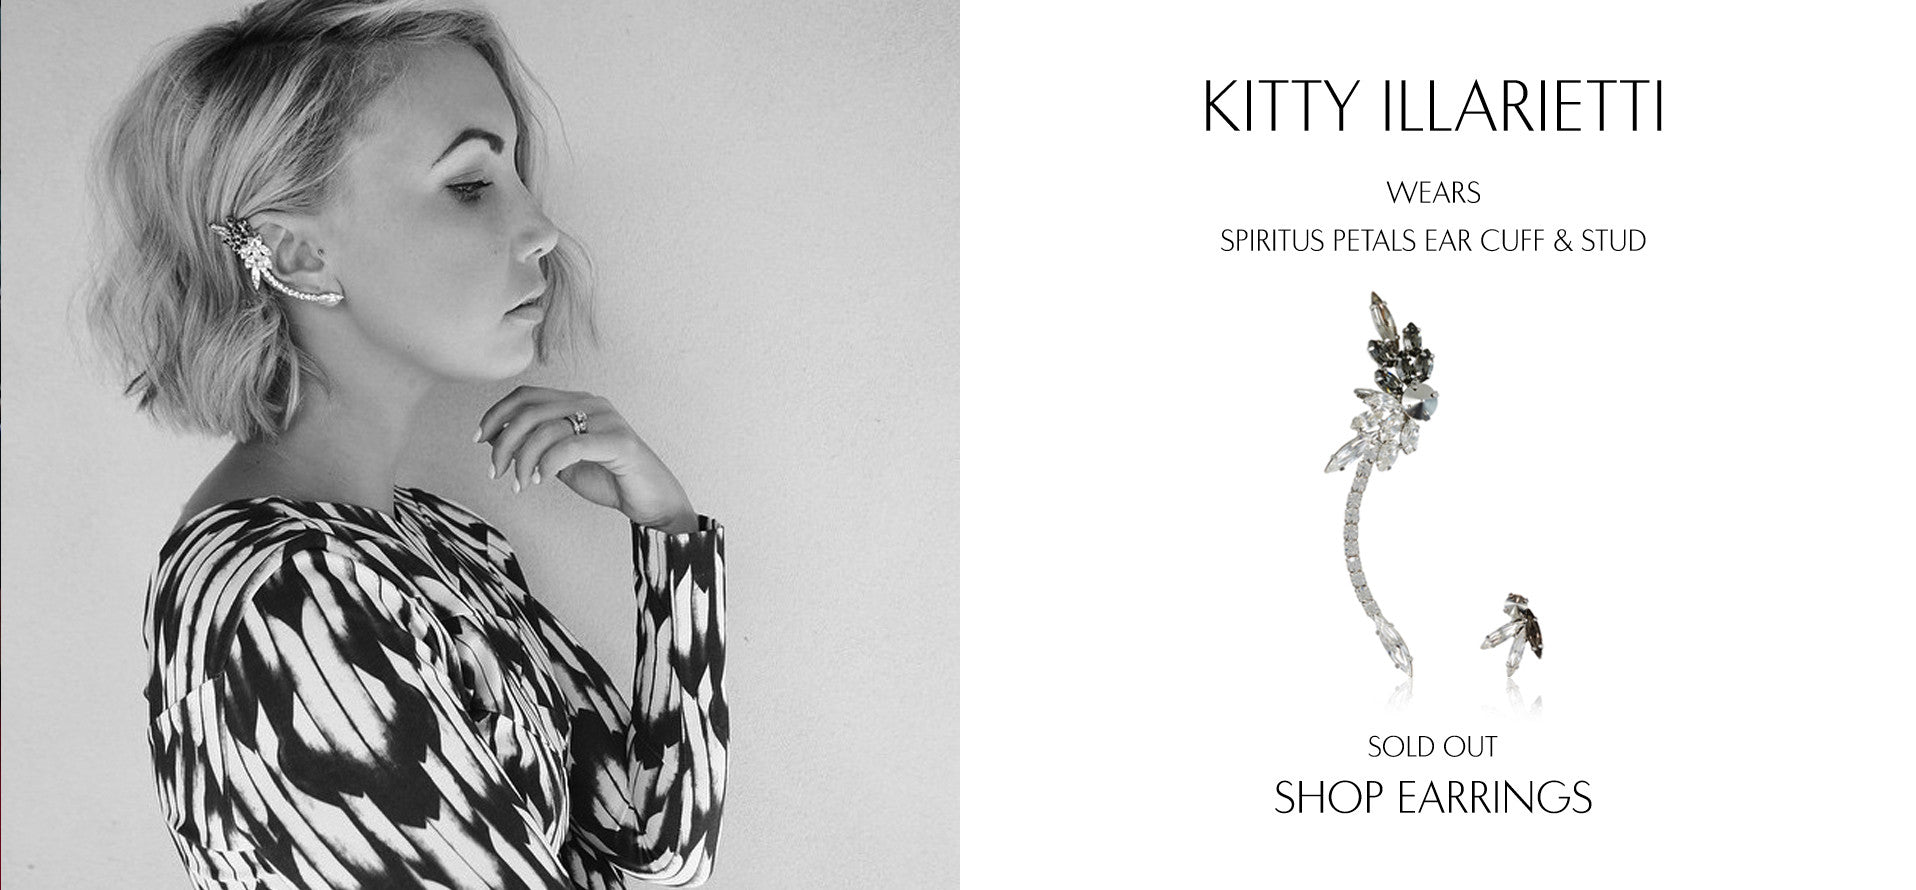 Lock And Key Clothing - Fashion Blog by Kitty Illarietti wears Sarina Suriano Spiritus Petals Earcuff & stud